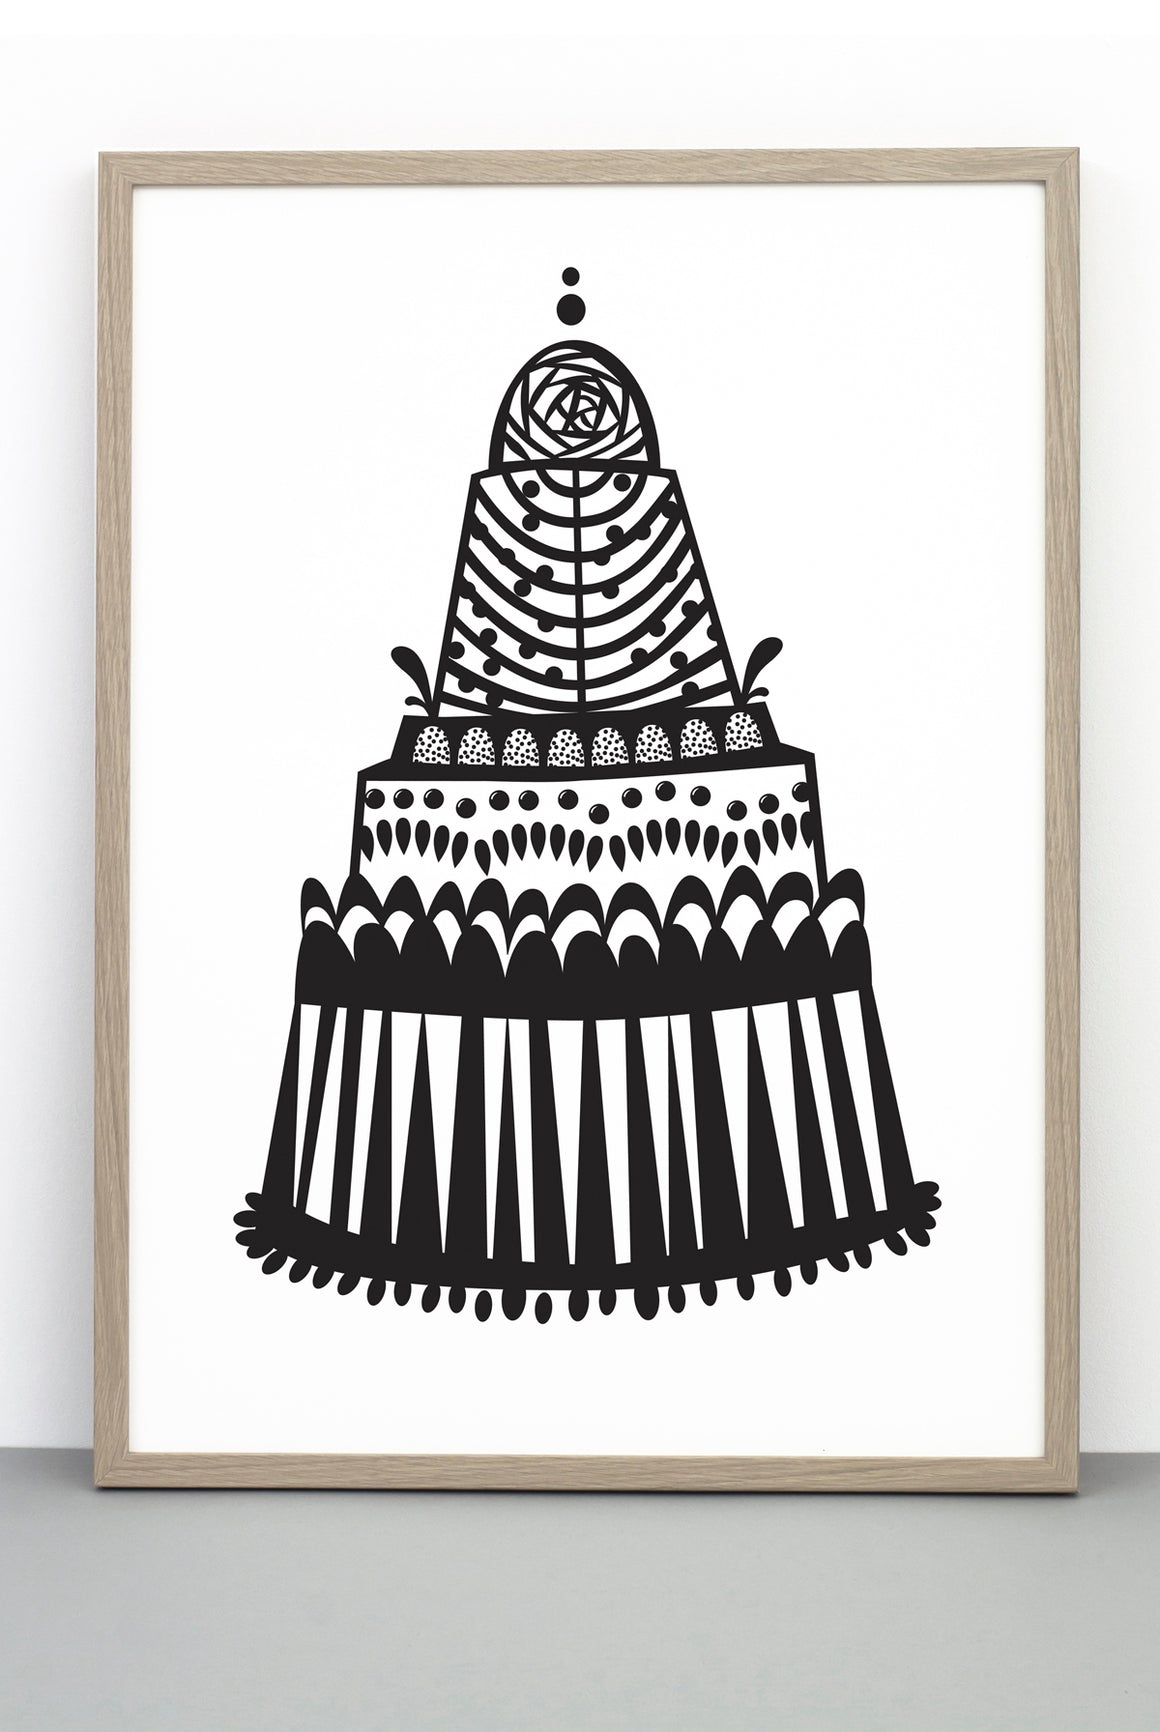 A CAKE PRINT/POSTER, IN BLACK AND WHITE